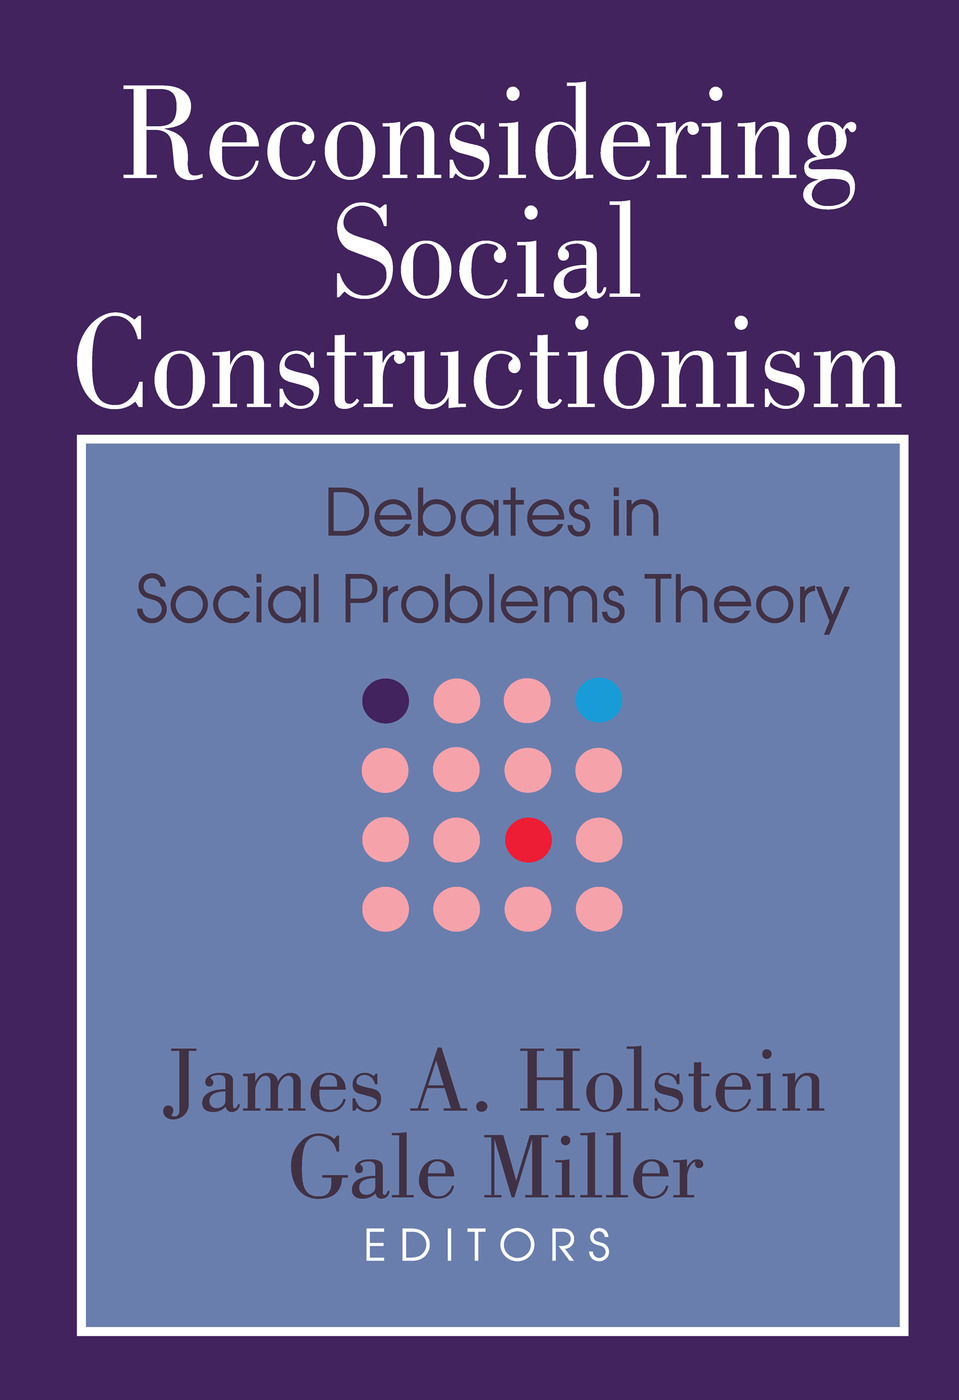 Reconsidering Social Constructionism: Debates in Social Problems Theory, 1st Edition (Paperback) book cover